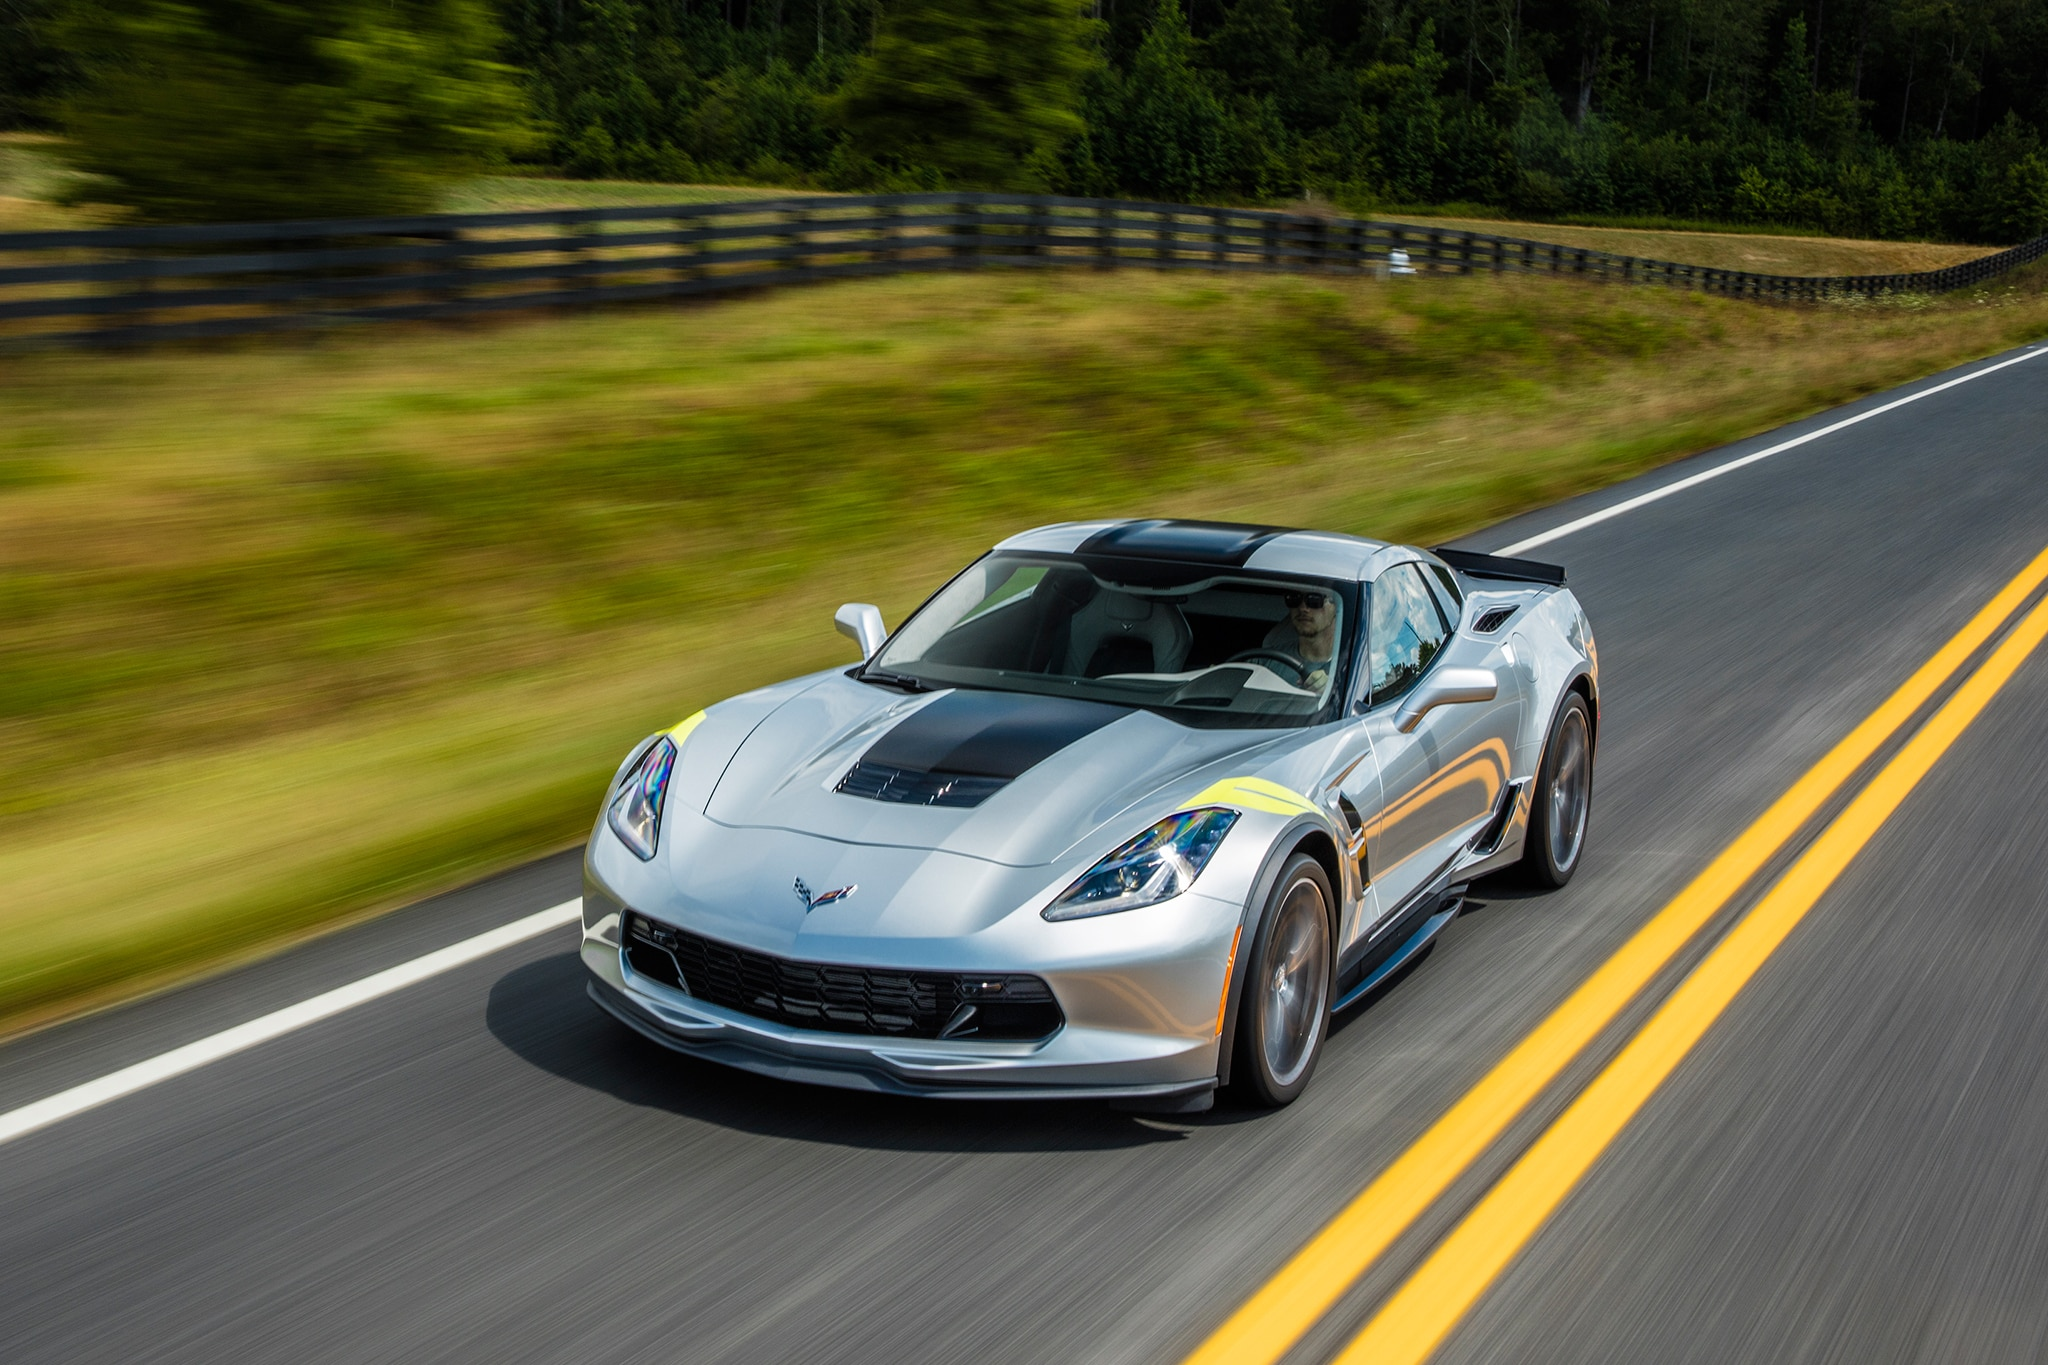 2017 Chevrolet Corvette Grand Sport Automatic First Drive Review ...